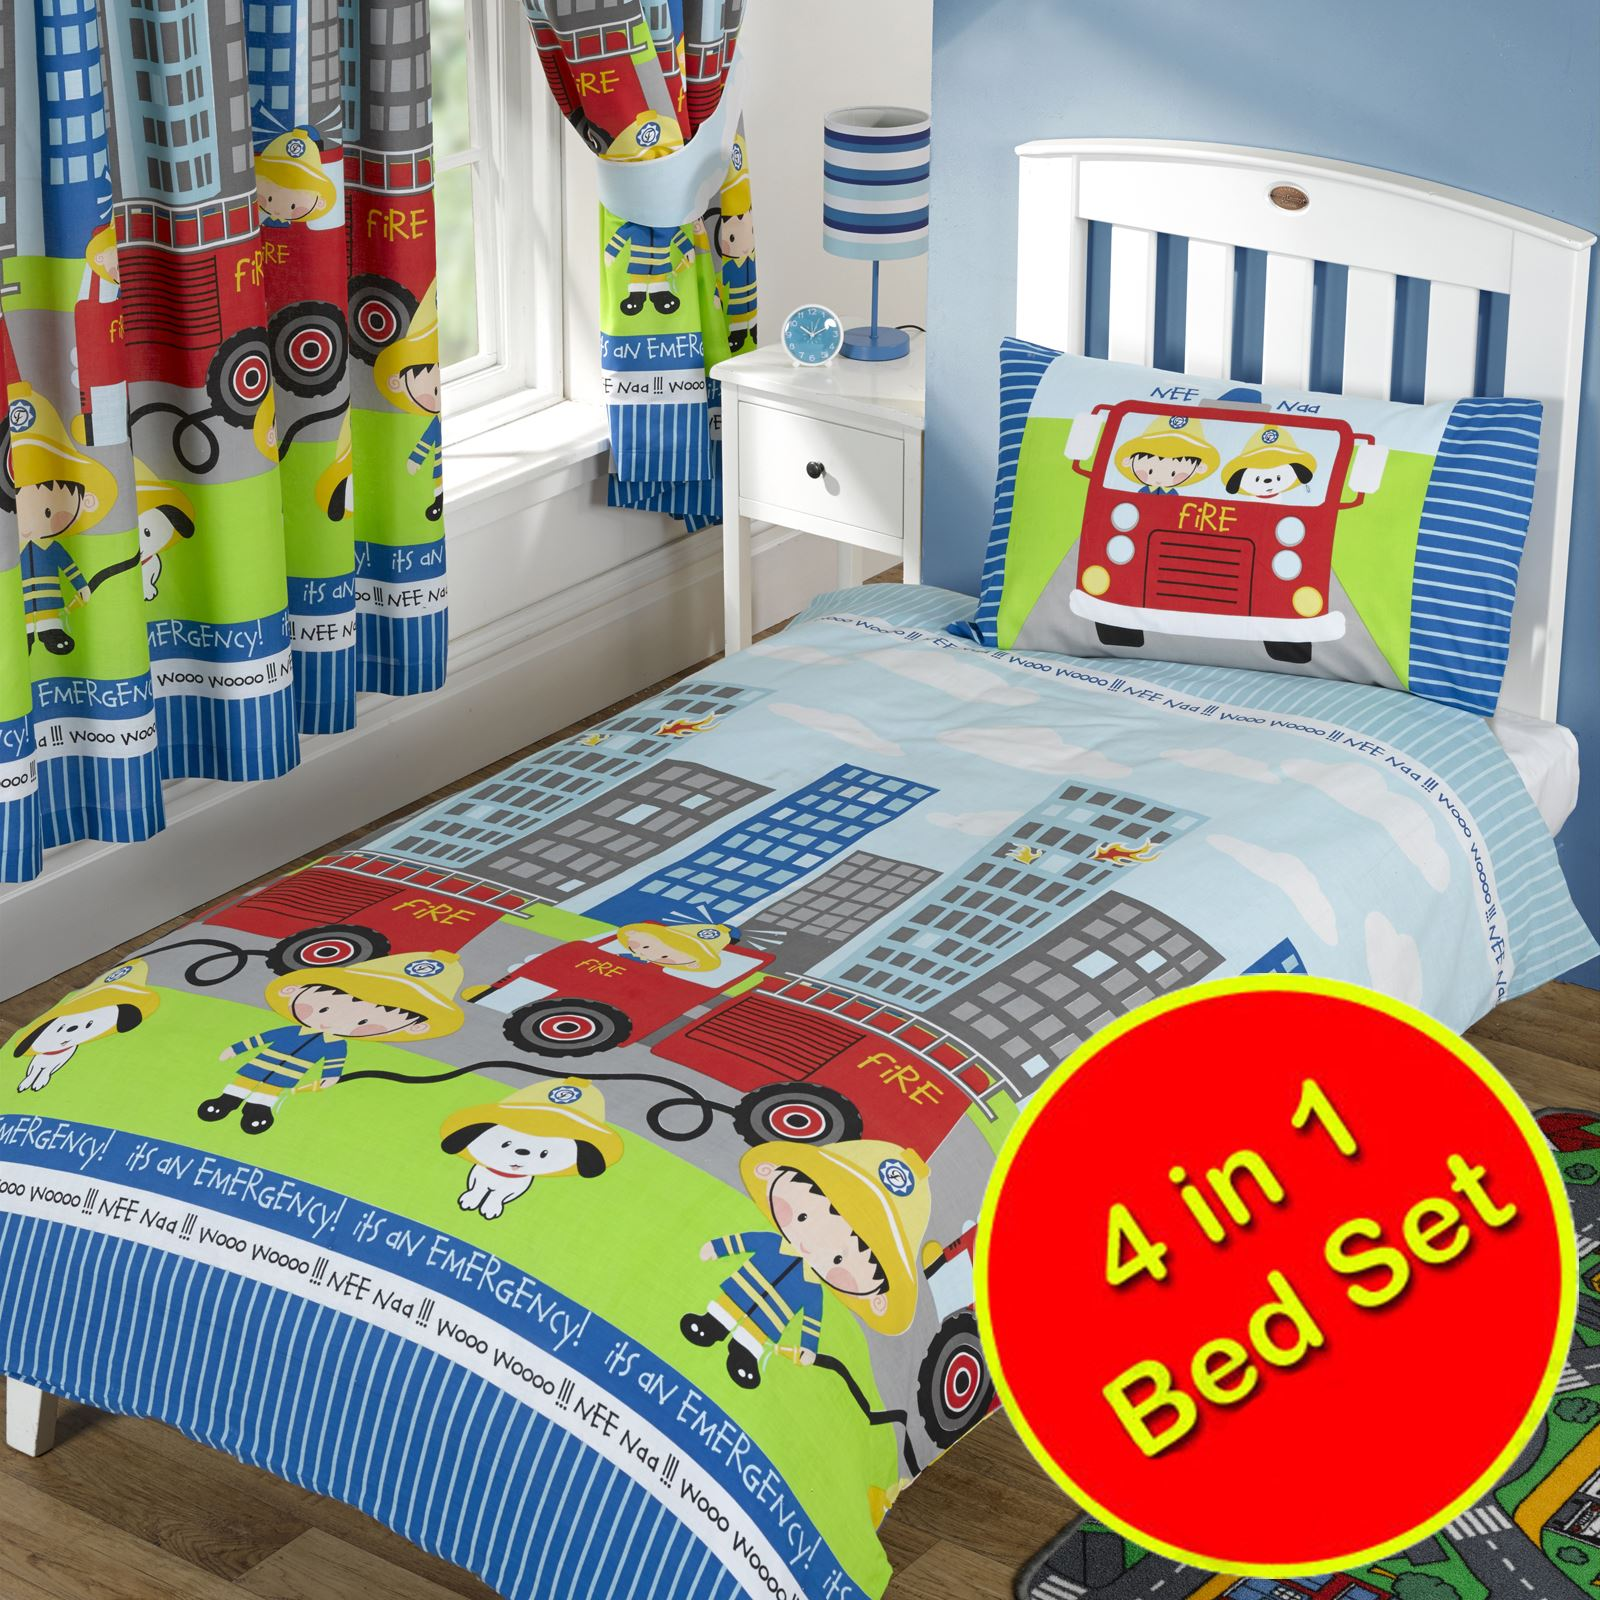 feuerwehrauto 4 in 1 kinderbett bettw sche paket bettbezug neu ebay. Black Bedroom Furniture Sets. Home Design Ideas